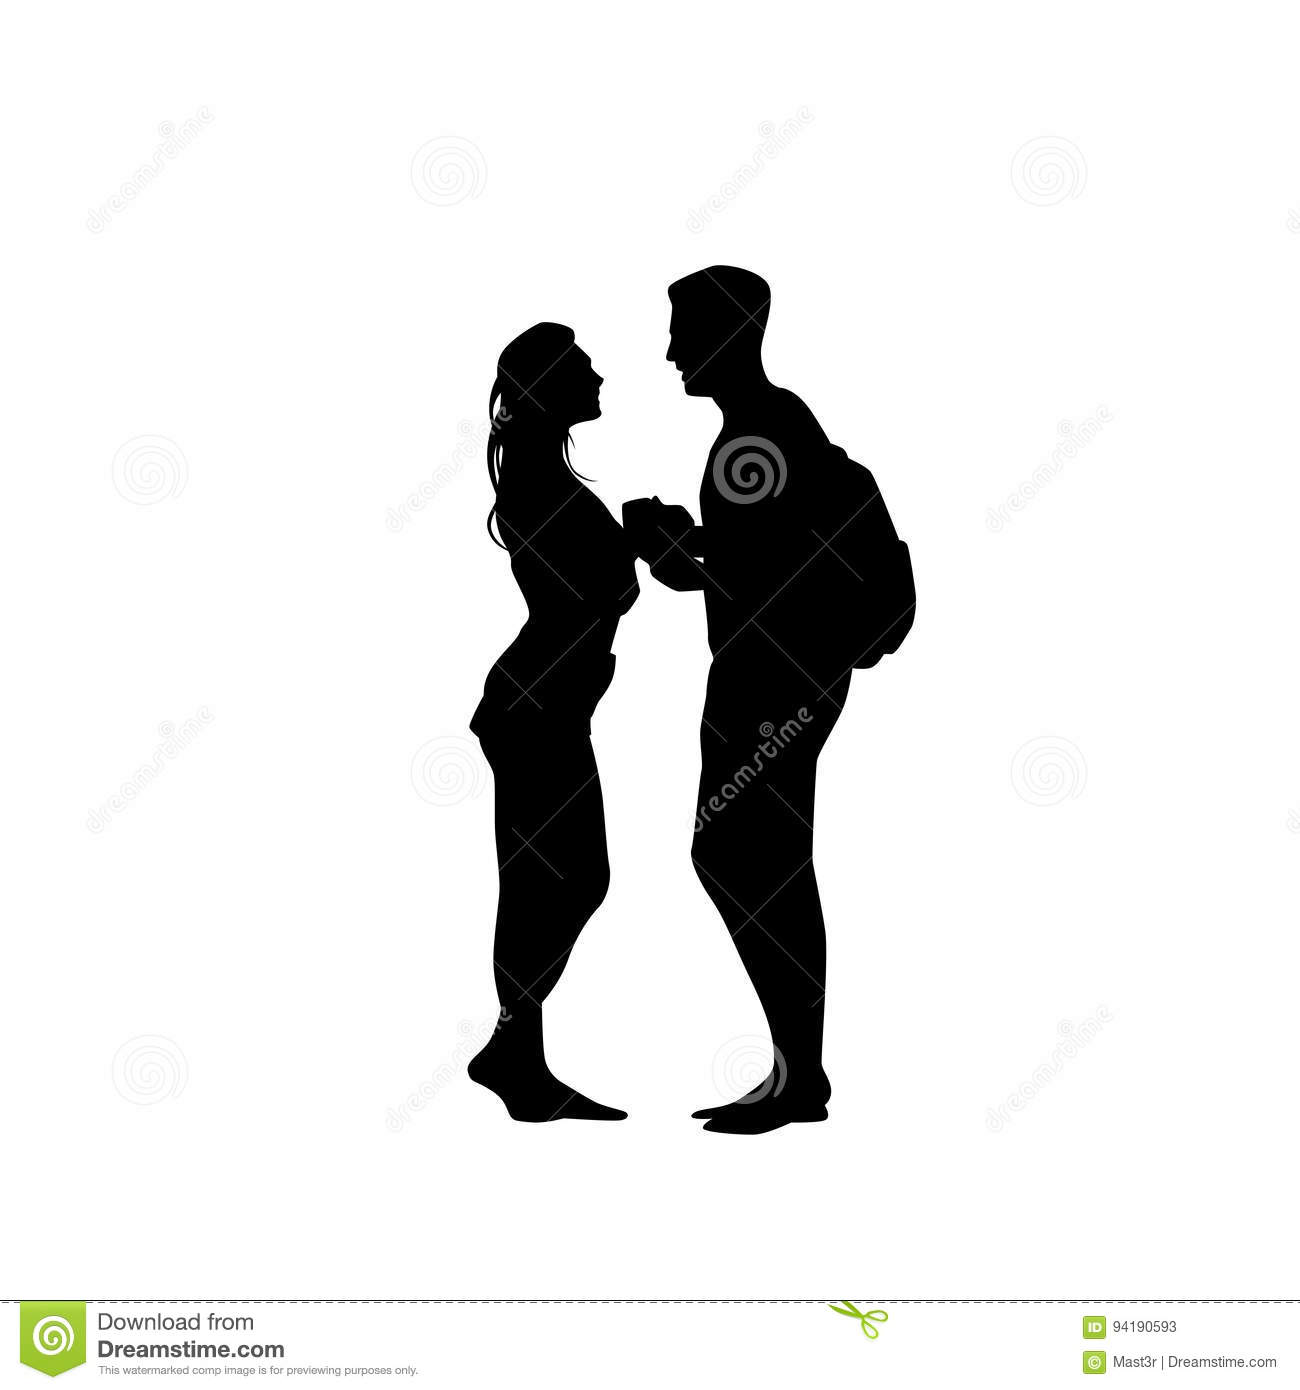 black silhouette romantic couple holding hands looking at each